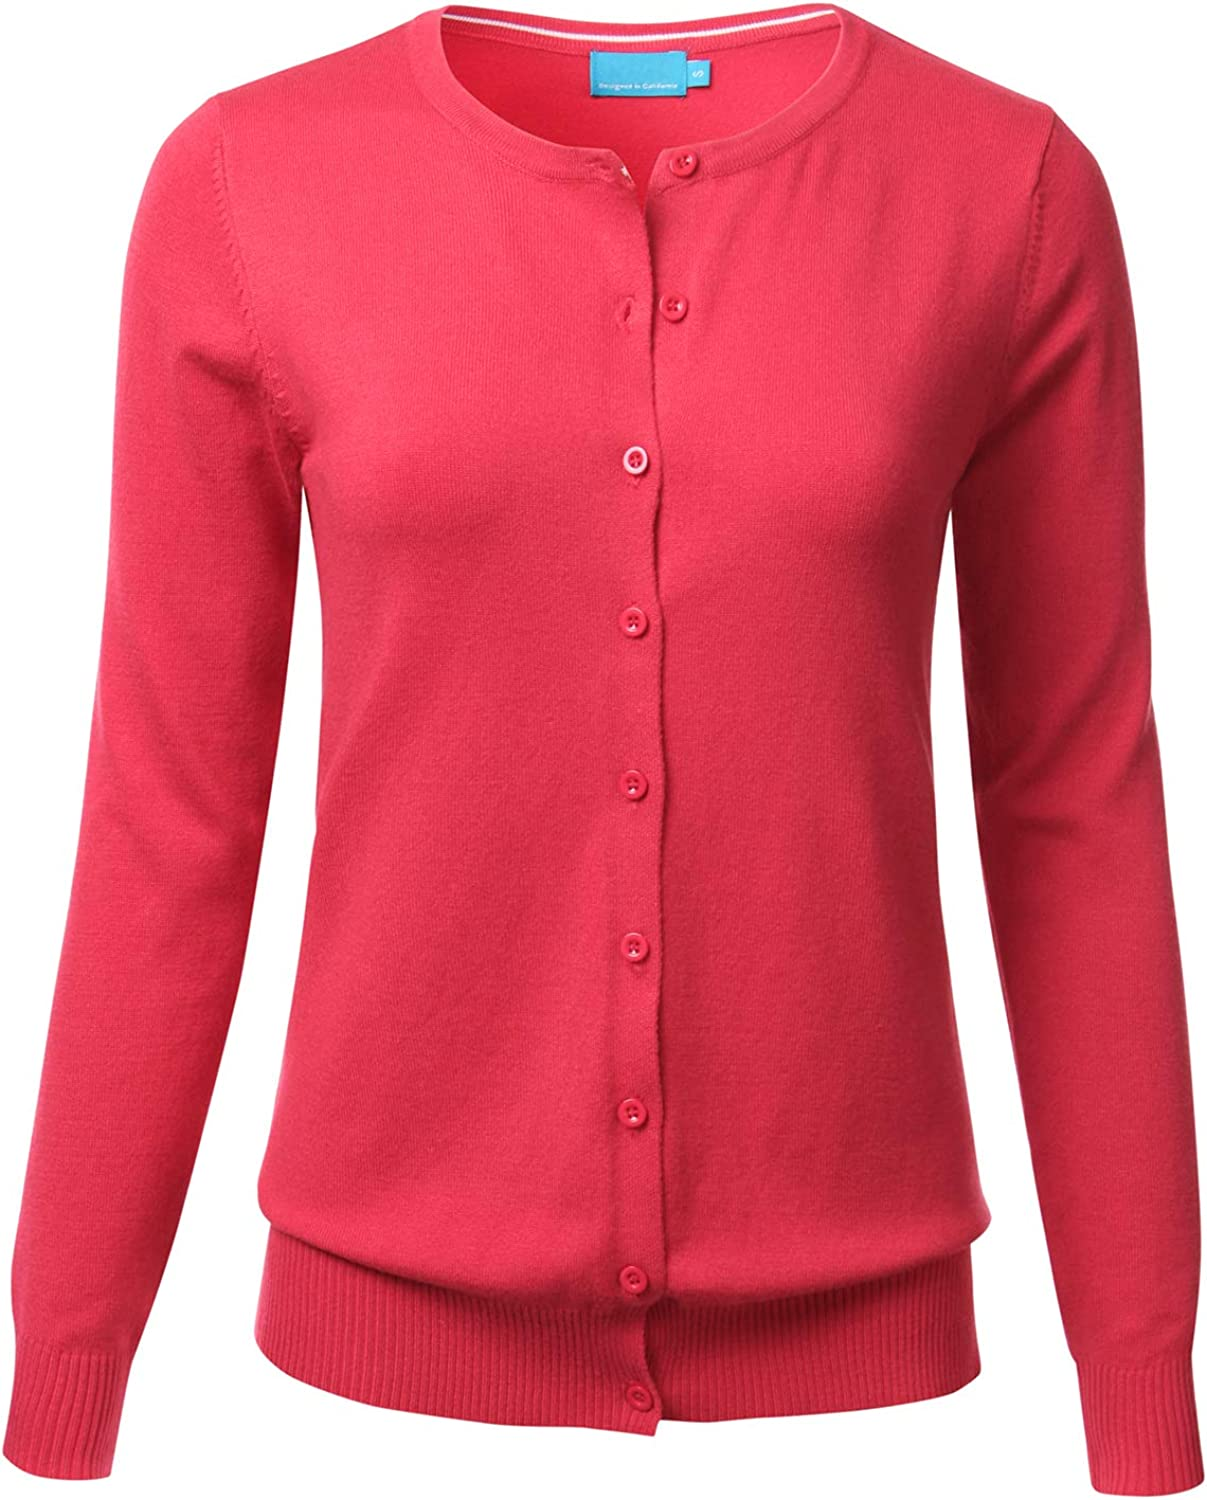 FLORIA Womens Button Down Crew Neck Long Sleeve Soft Knit Cardigan Sweater 1XL, Fc280_coral